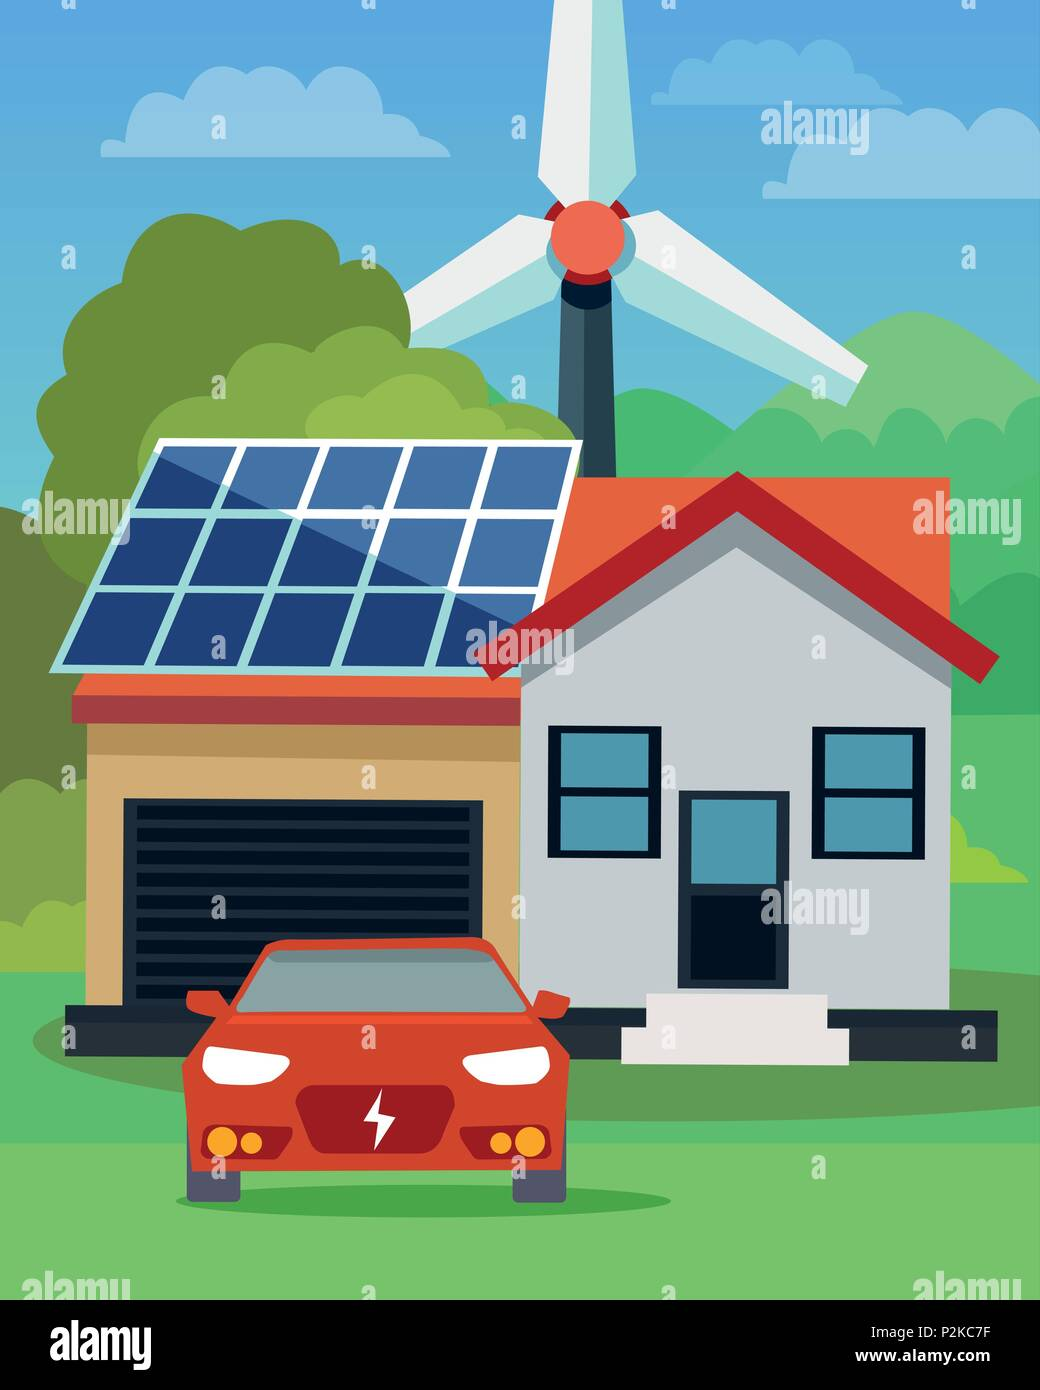 Flat vector illustration of an electric car in front of a house with solar panels and wind turbine in the background - Stock Vector